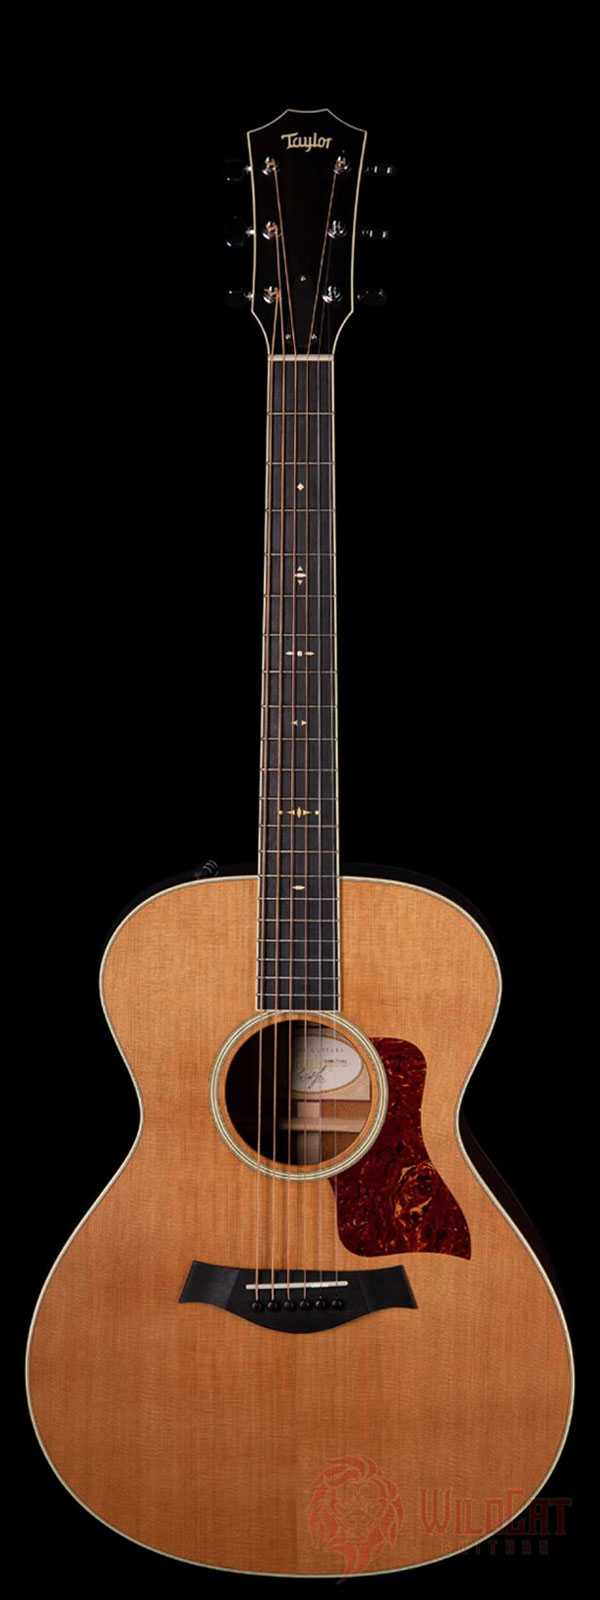 Taylor 2013 512E Cedar with hardshell case Preowned